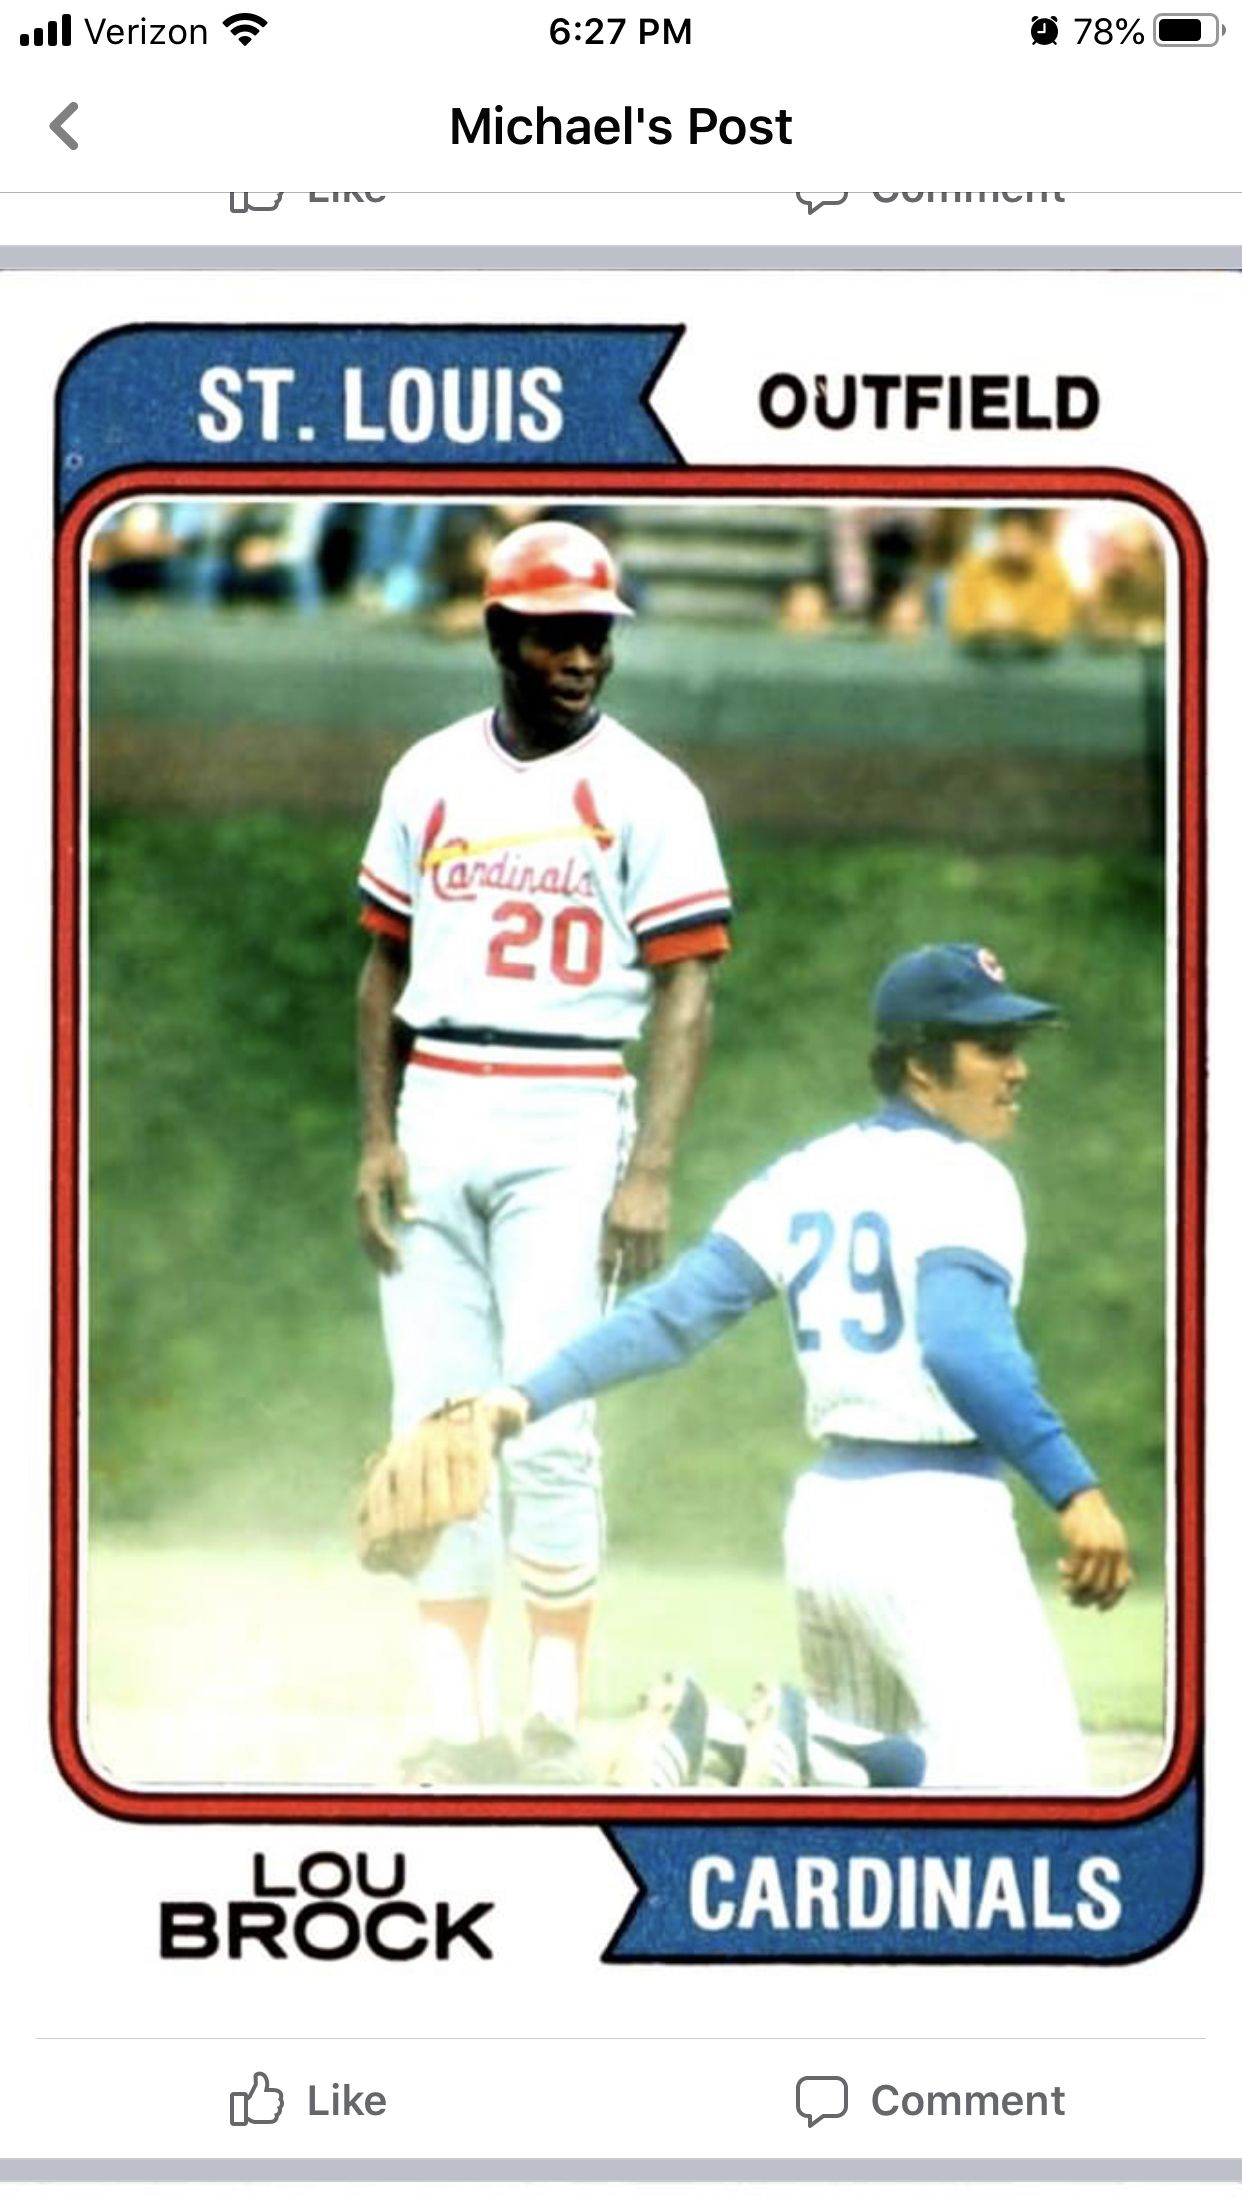 Pin By Olsen On Sports Various In 2020 Baseball Cards Baseball Trading Cards Baseball History